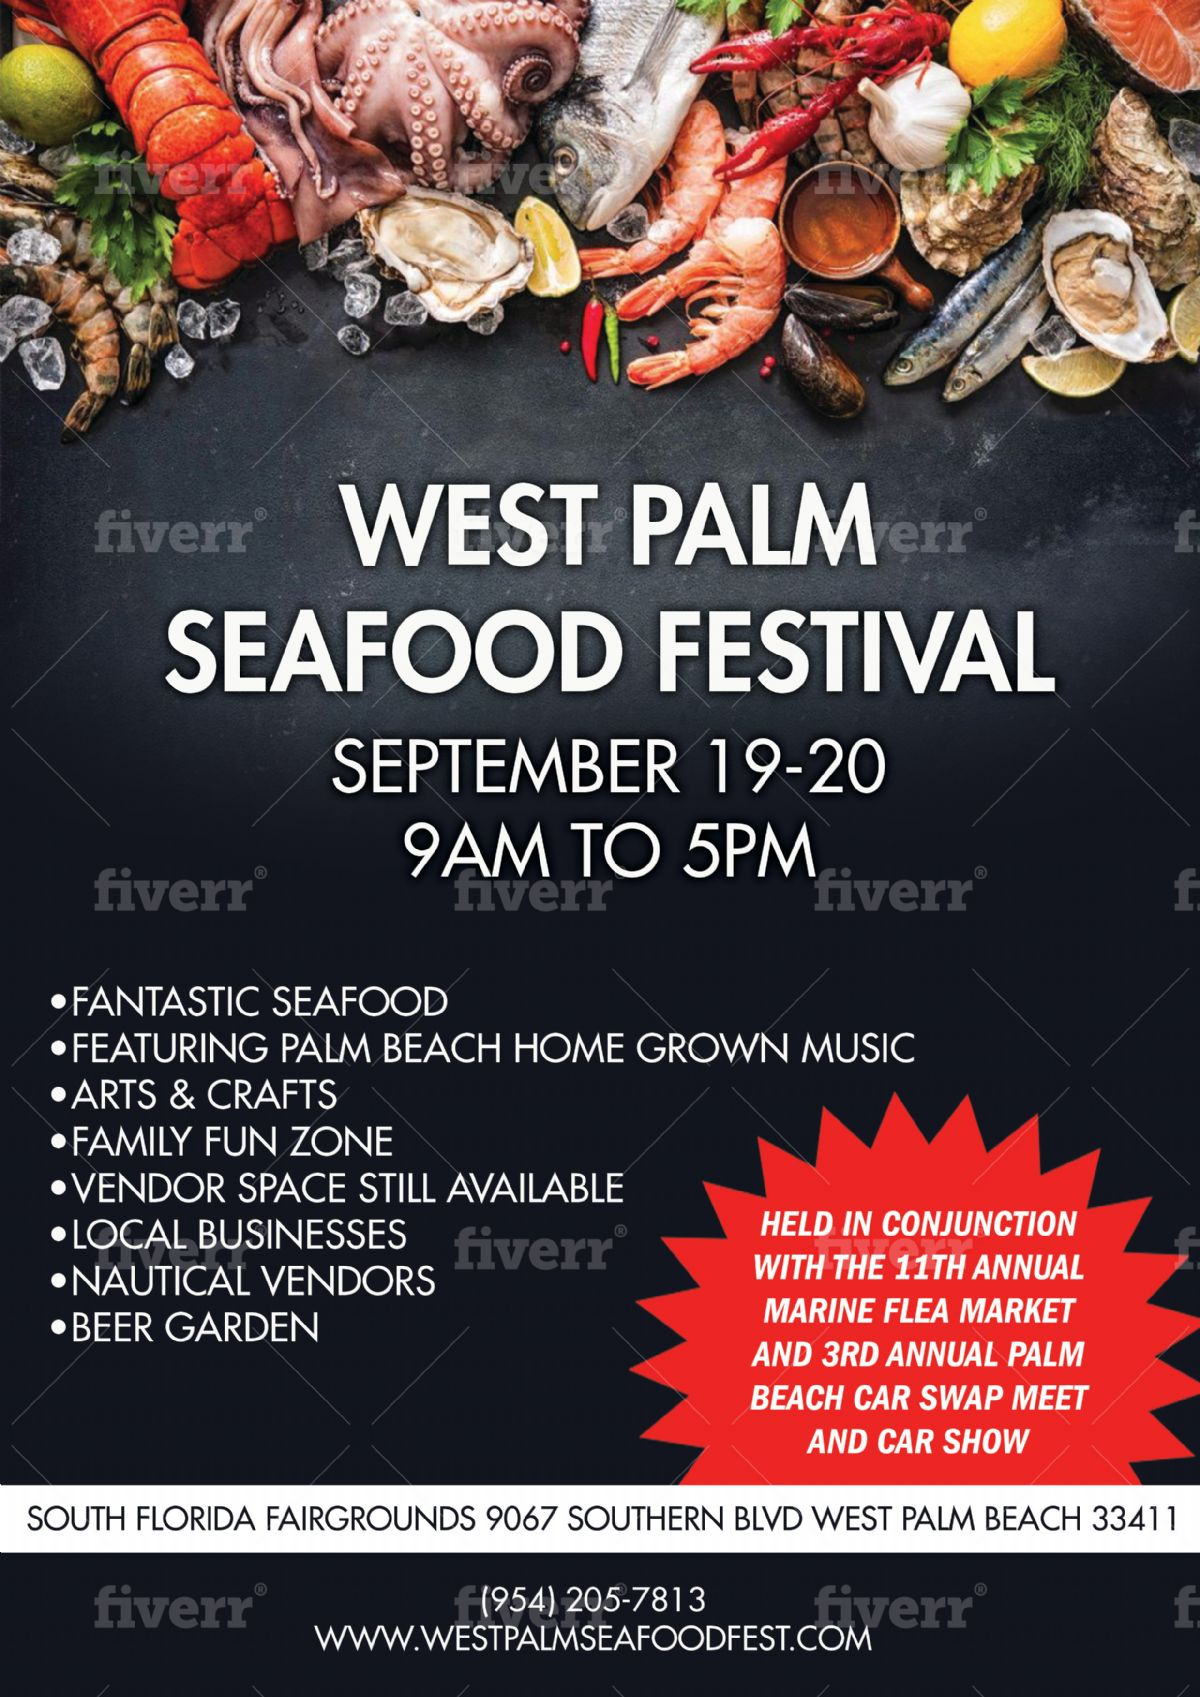 West Palm Seafood Festival - West Palm Beach